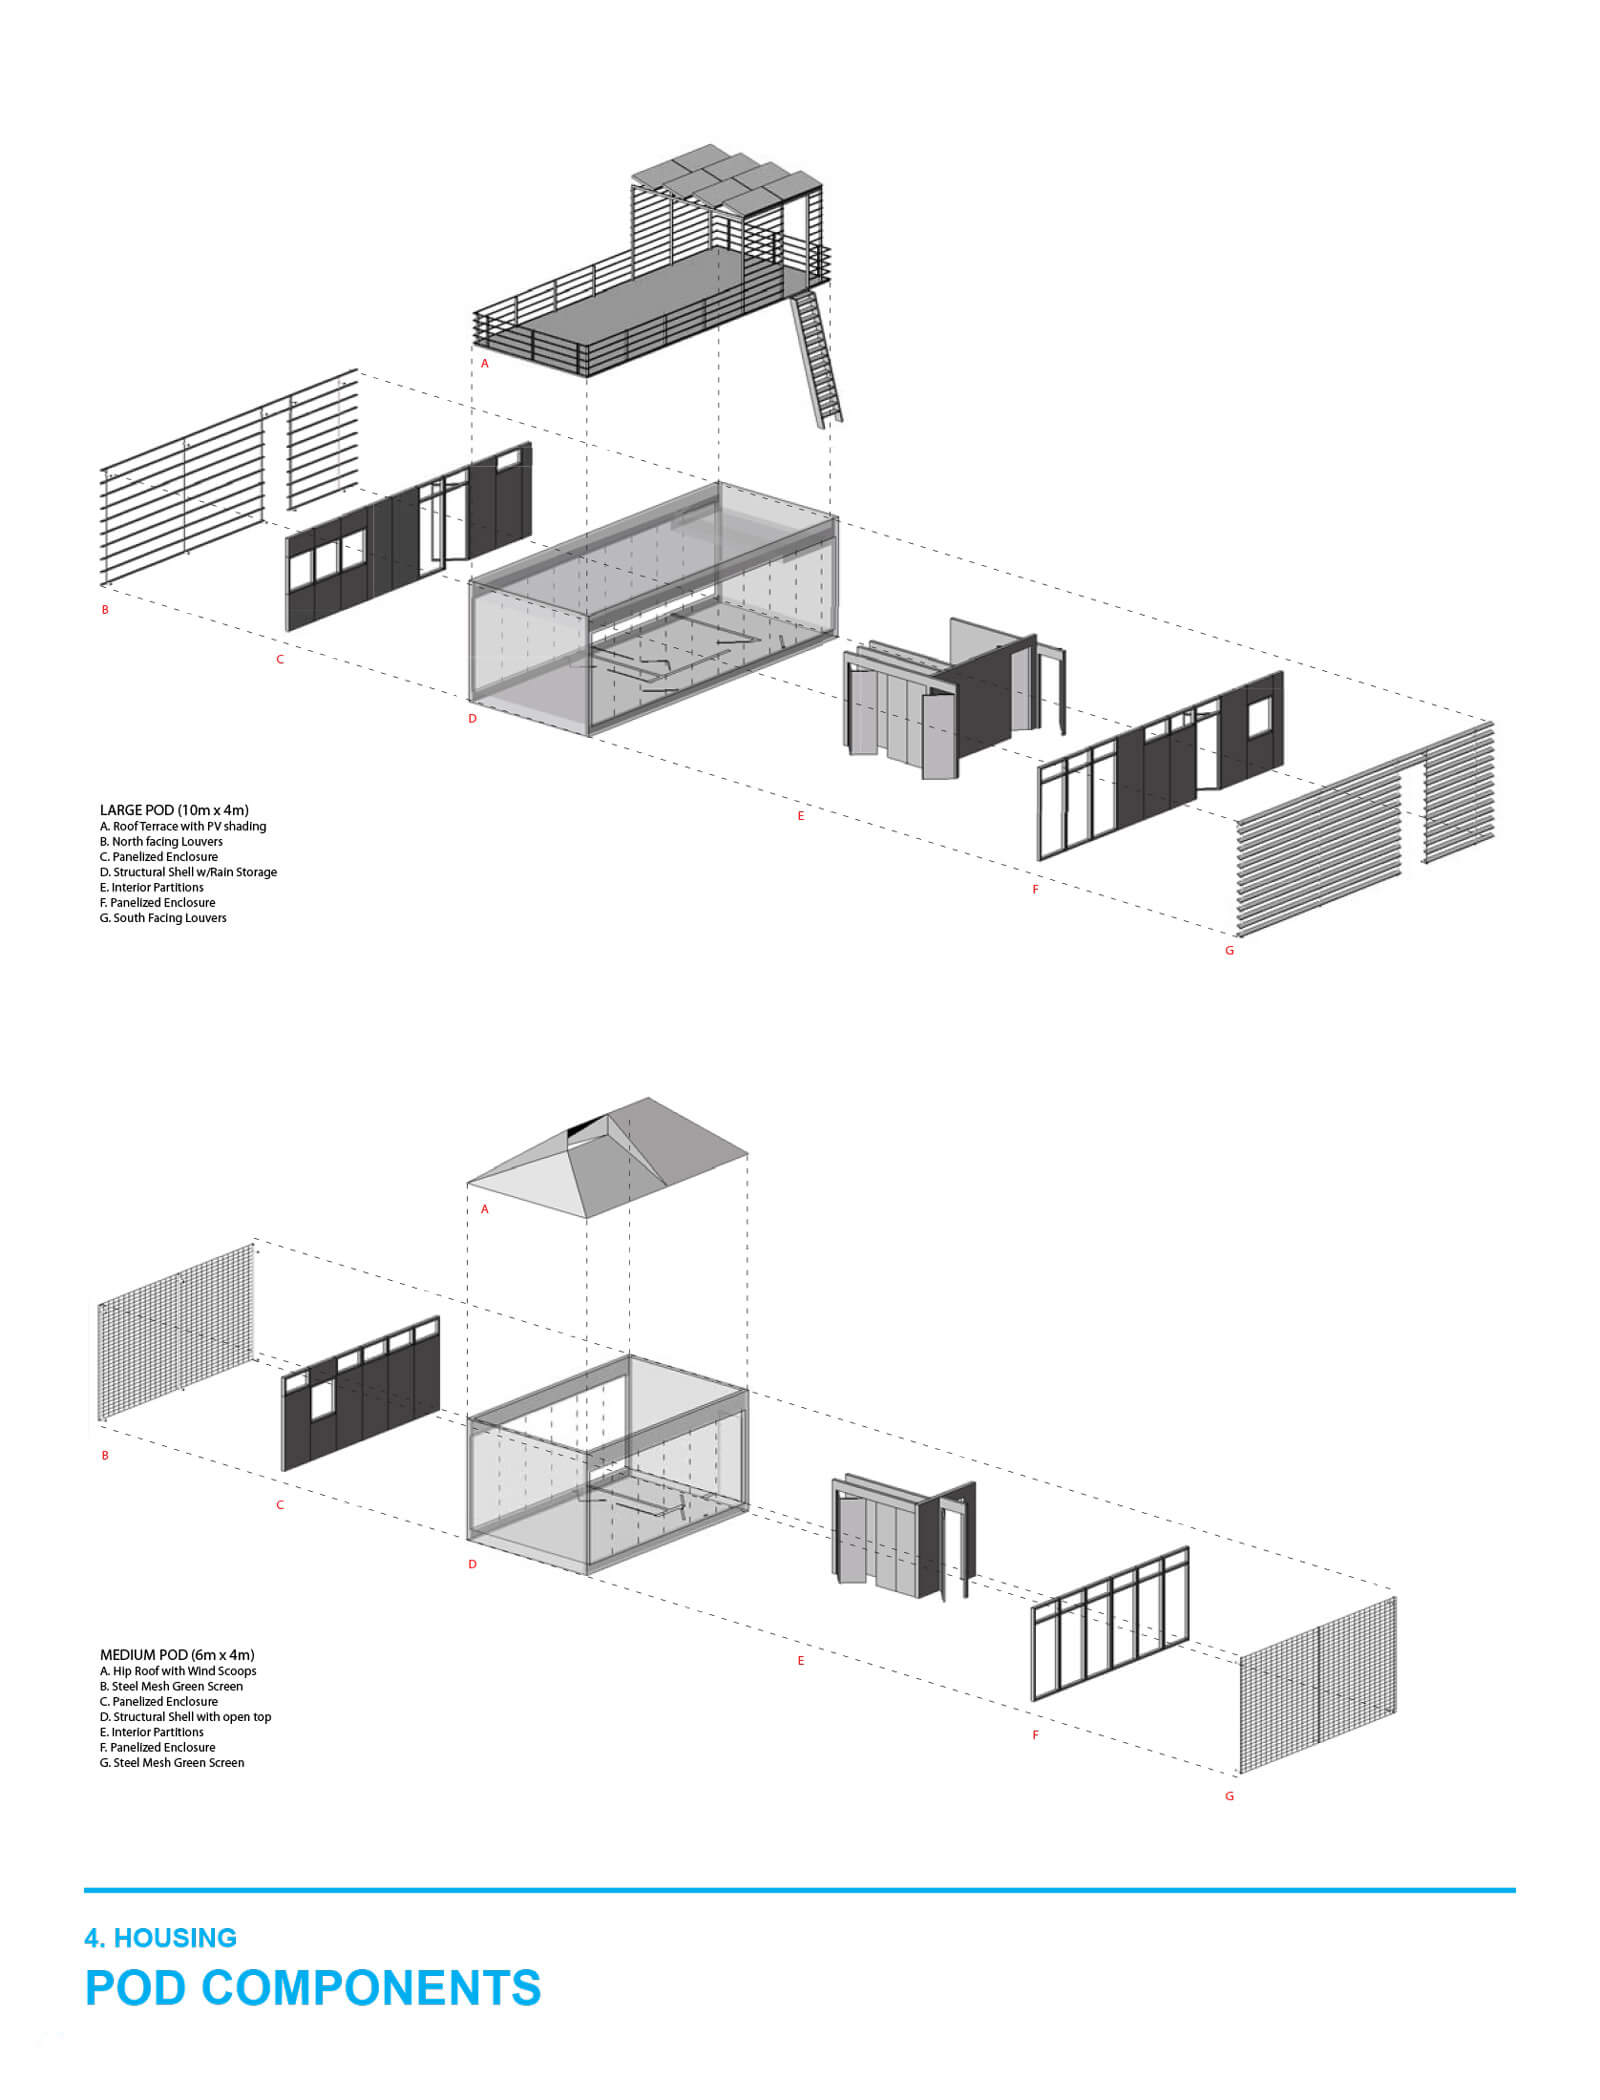 studio vara research tanzania pod components drawing